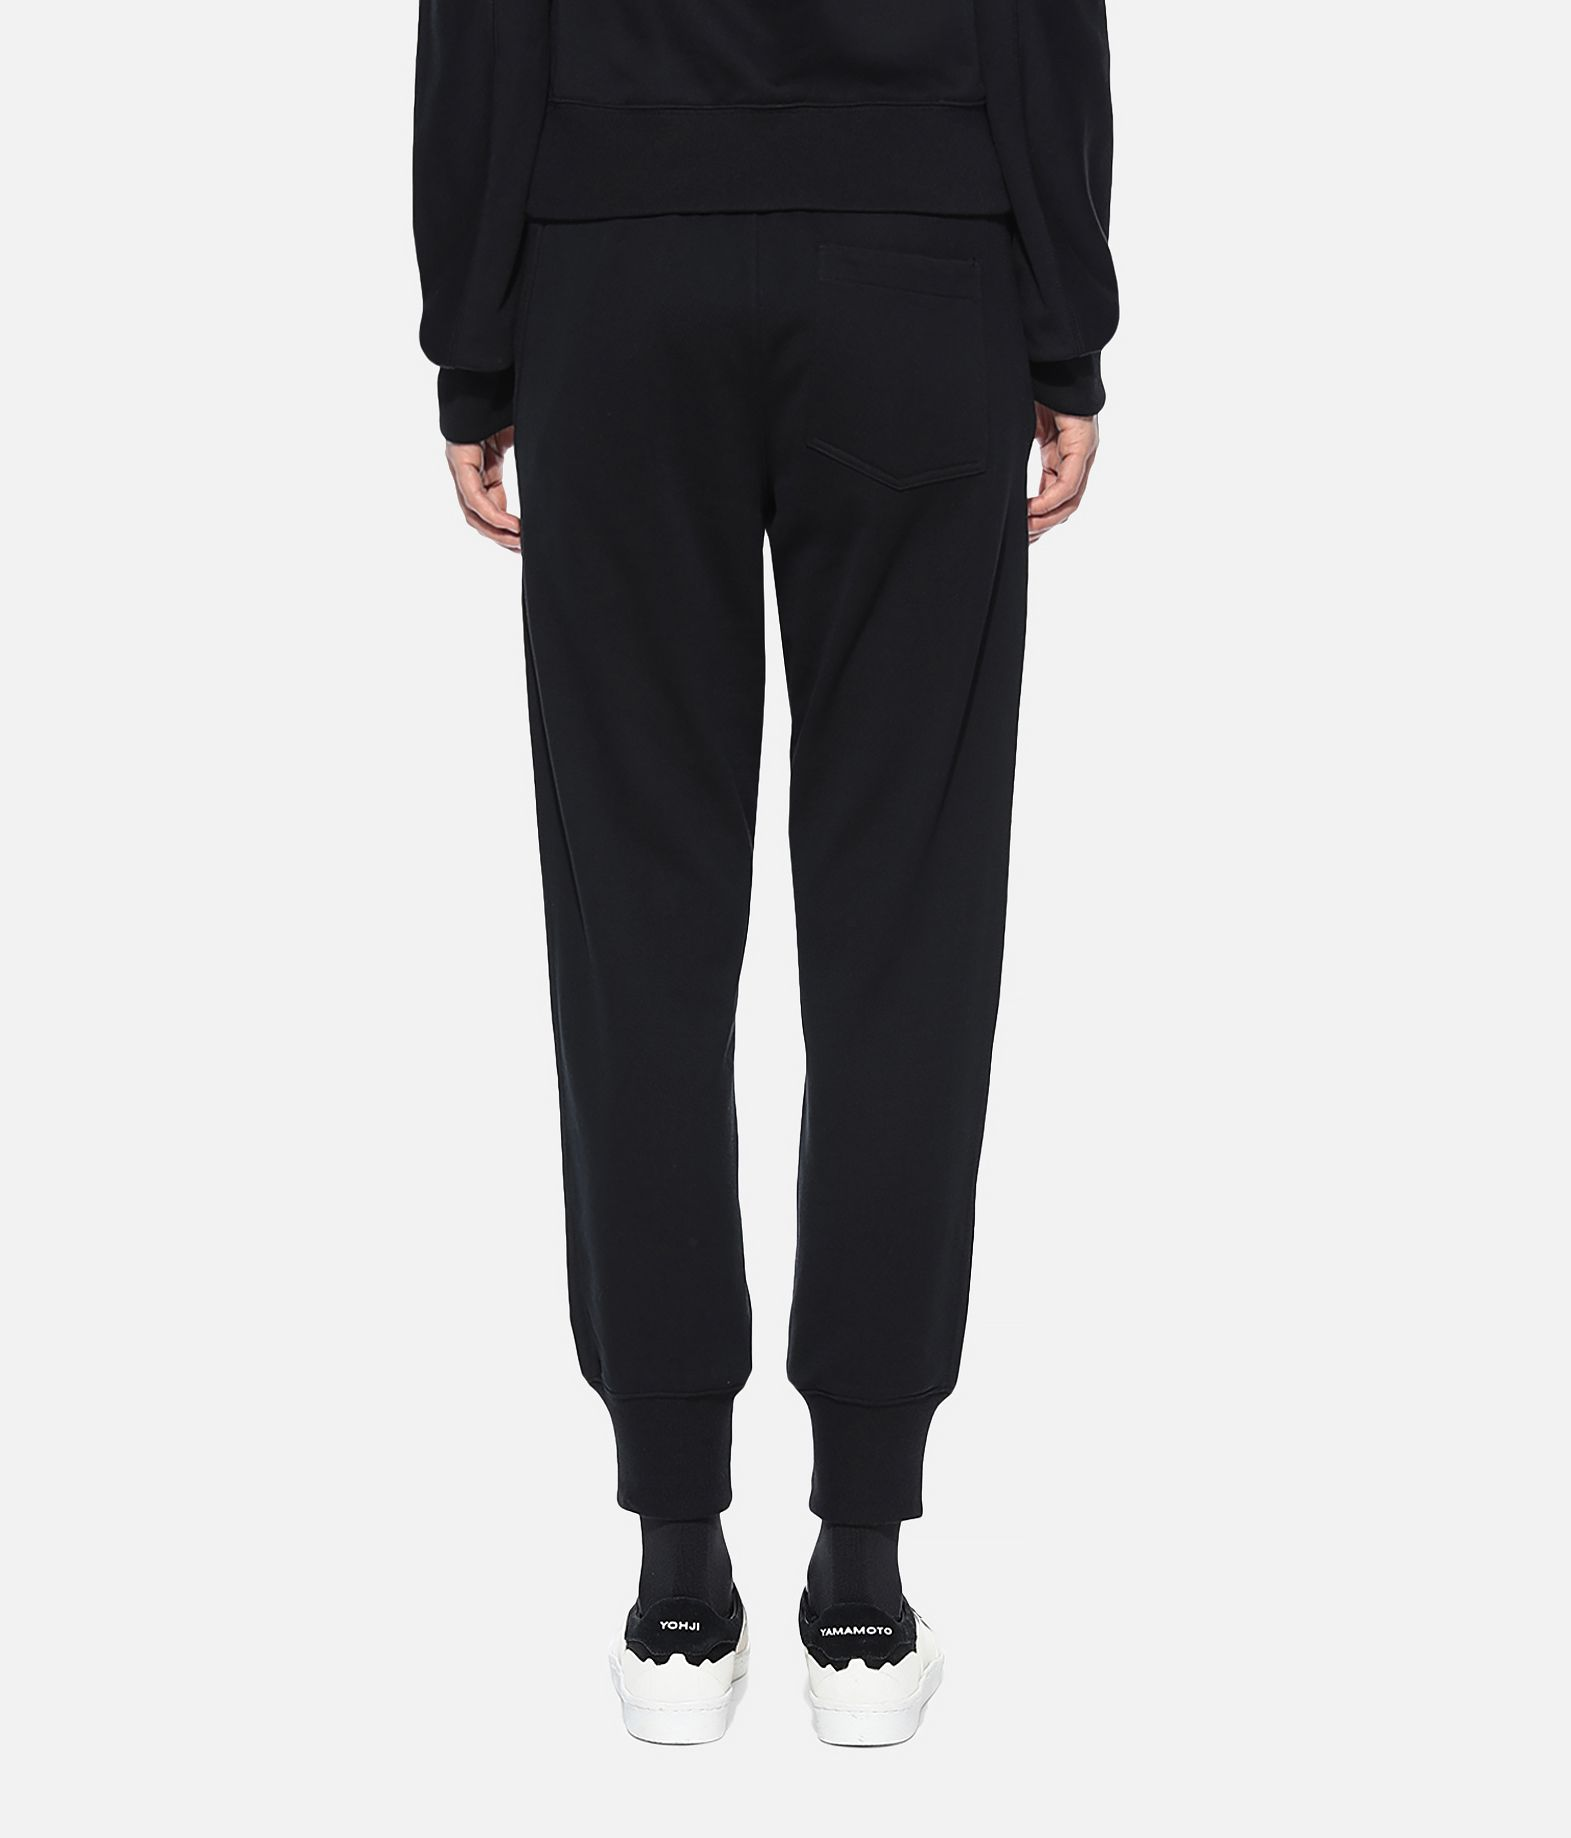 Y-3 Y-3 Classic Cuffed Pants Sweatpants Woman d